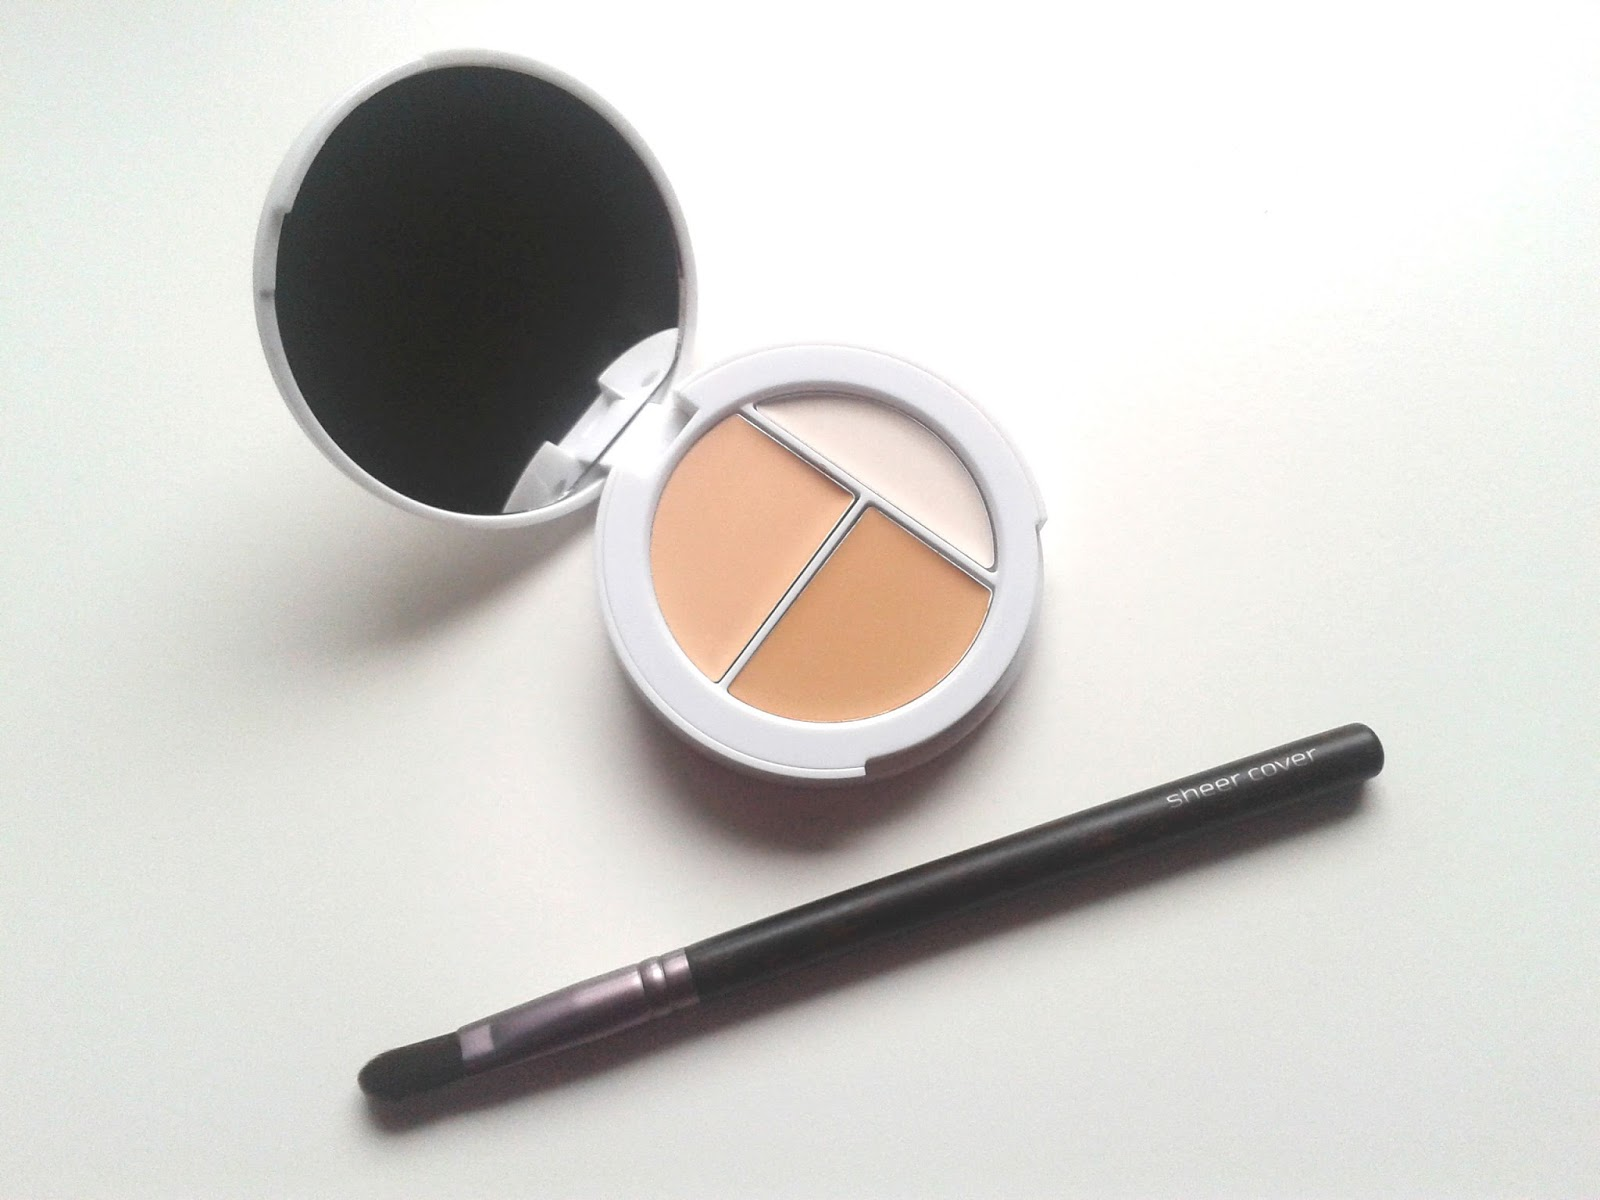 Sheer Cover Studio Concealer Trio Conceal & Brighten Trio